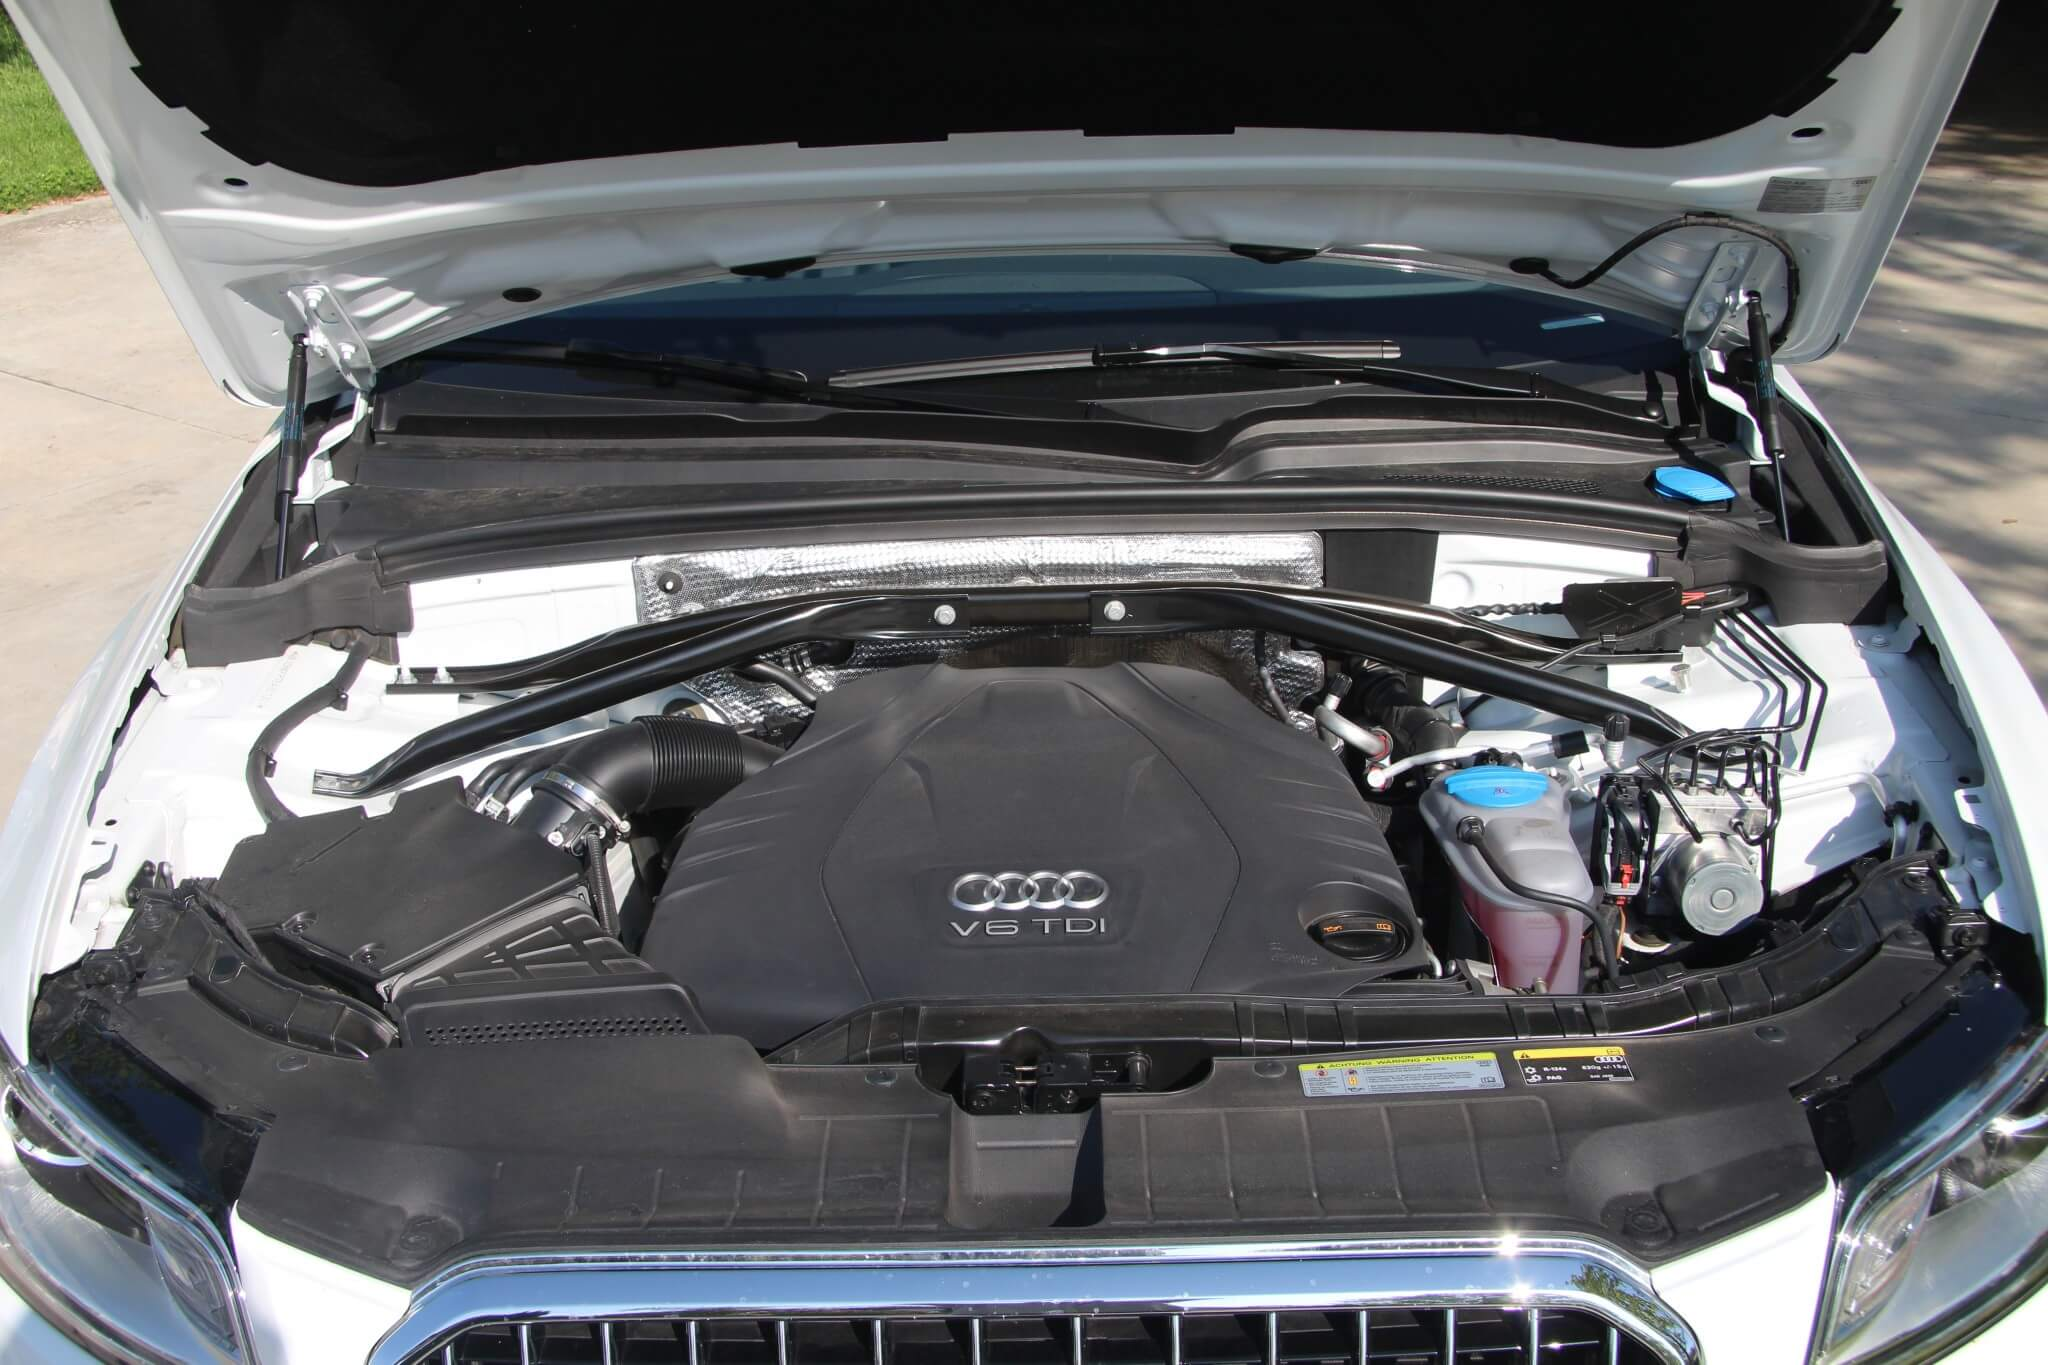 The Q5 TDI is powered by Audi's reliable 3.0L V-6 diesel. This engine produces 240 hp at 3,750-4,000 rpm and 428 lb.-ft. at 1,750-2,250 rpm. It's capable of high performance and high mileage.